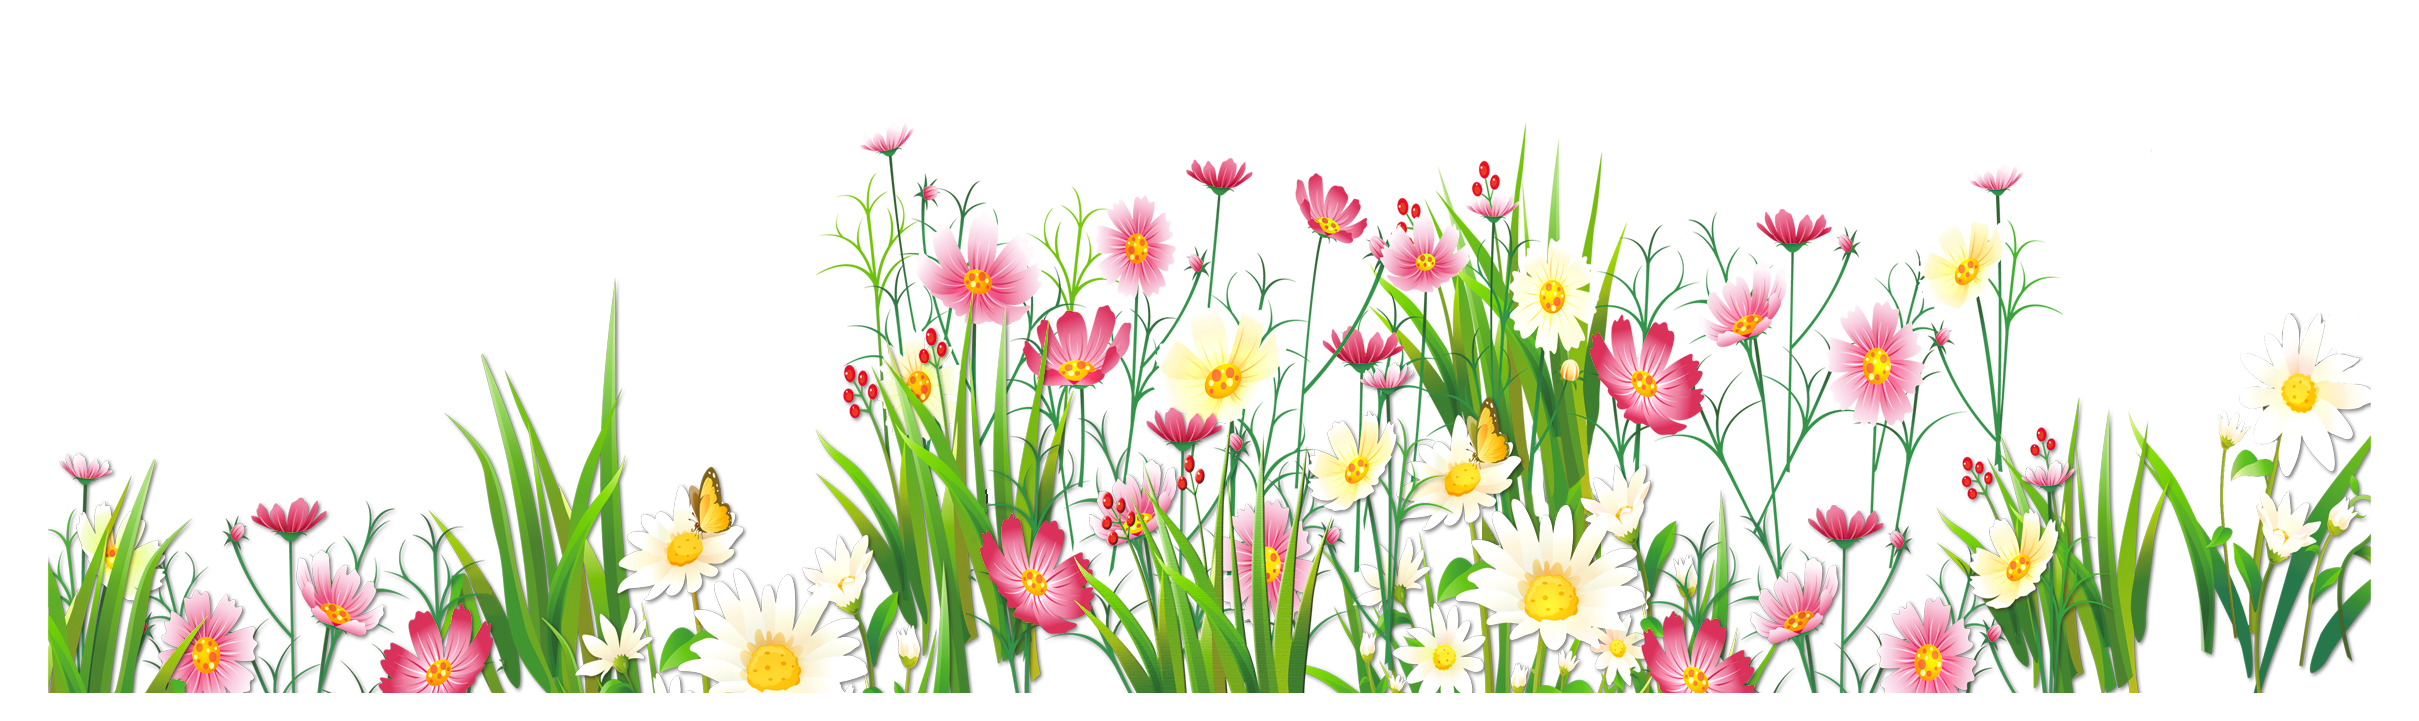 Flowers and grass png. Poppy clipart fake